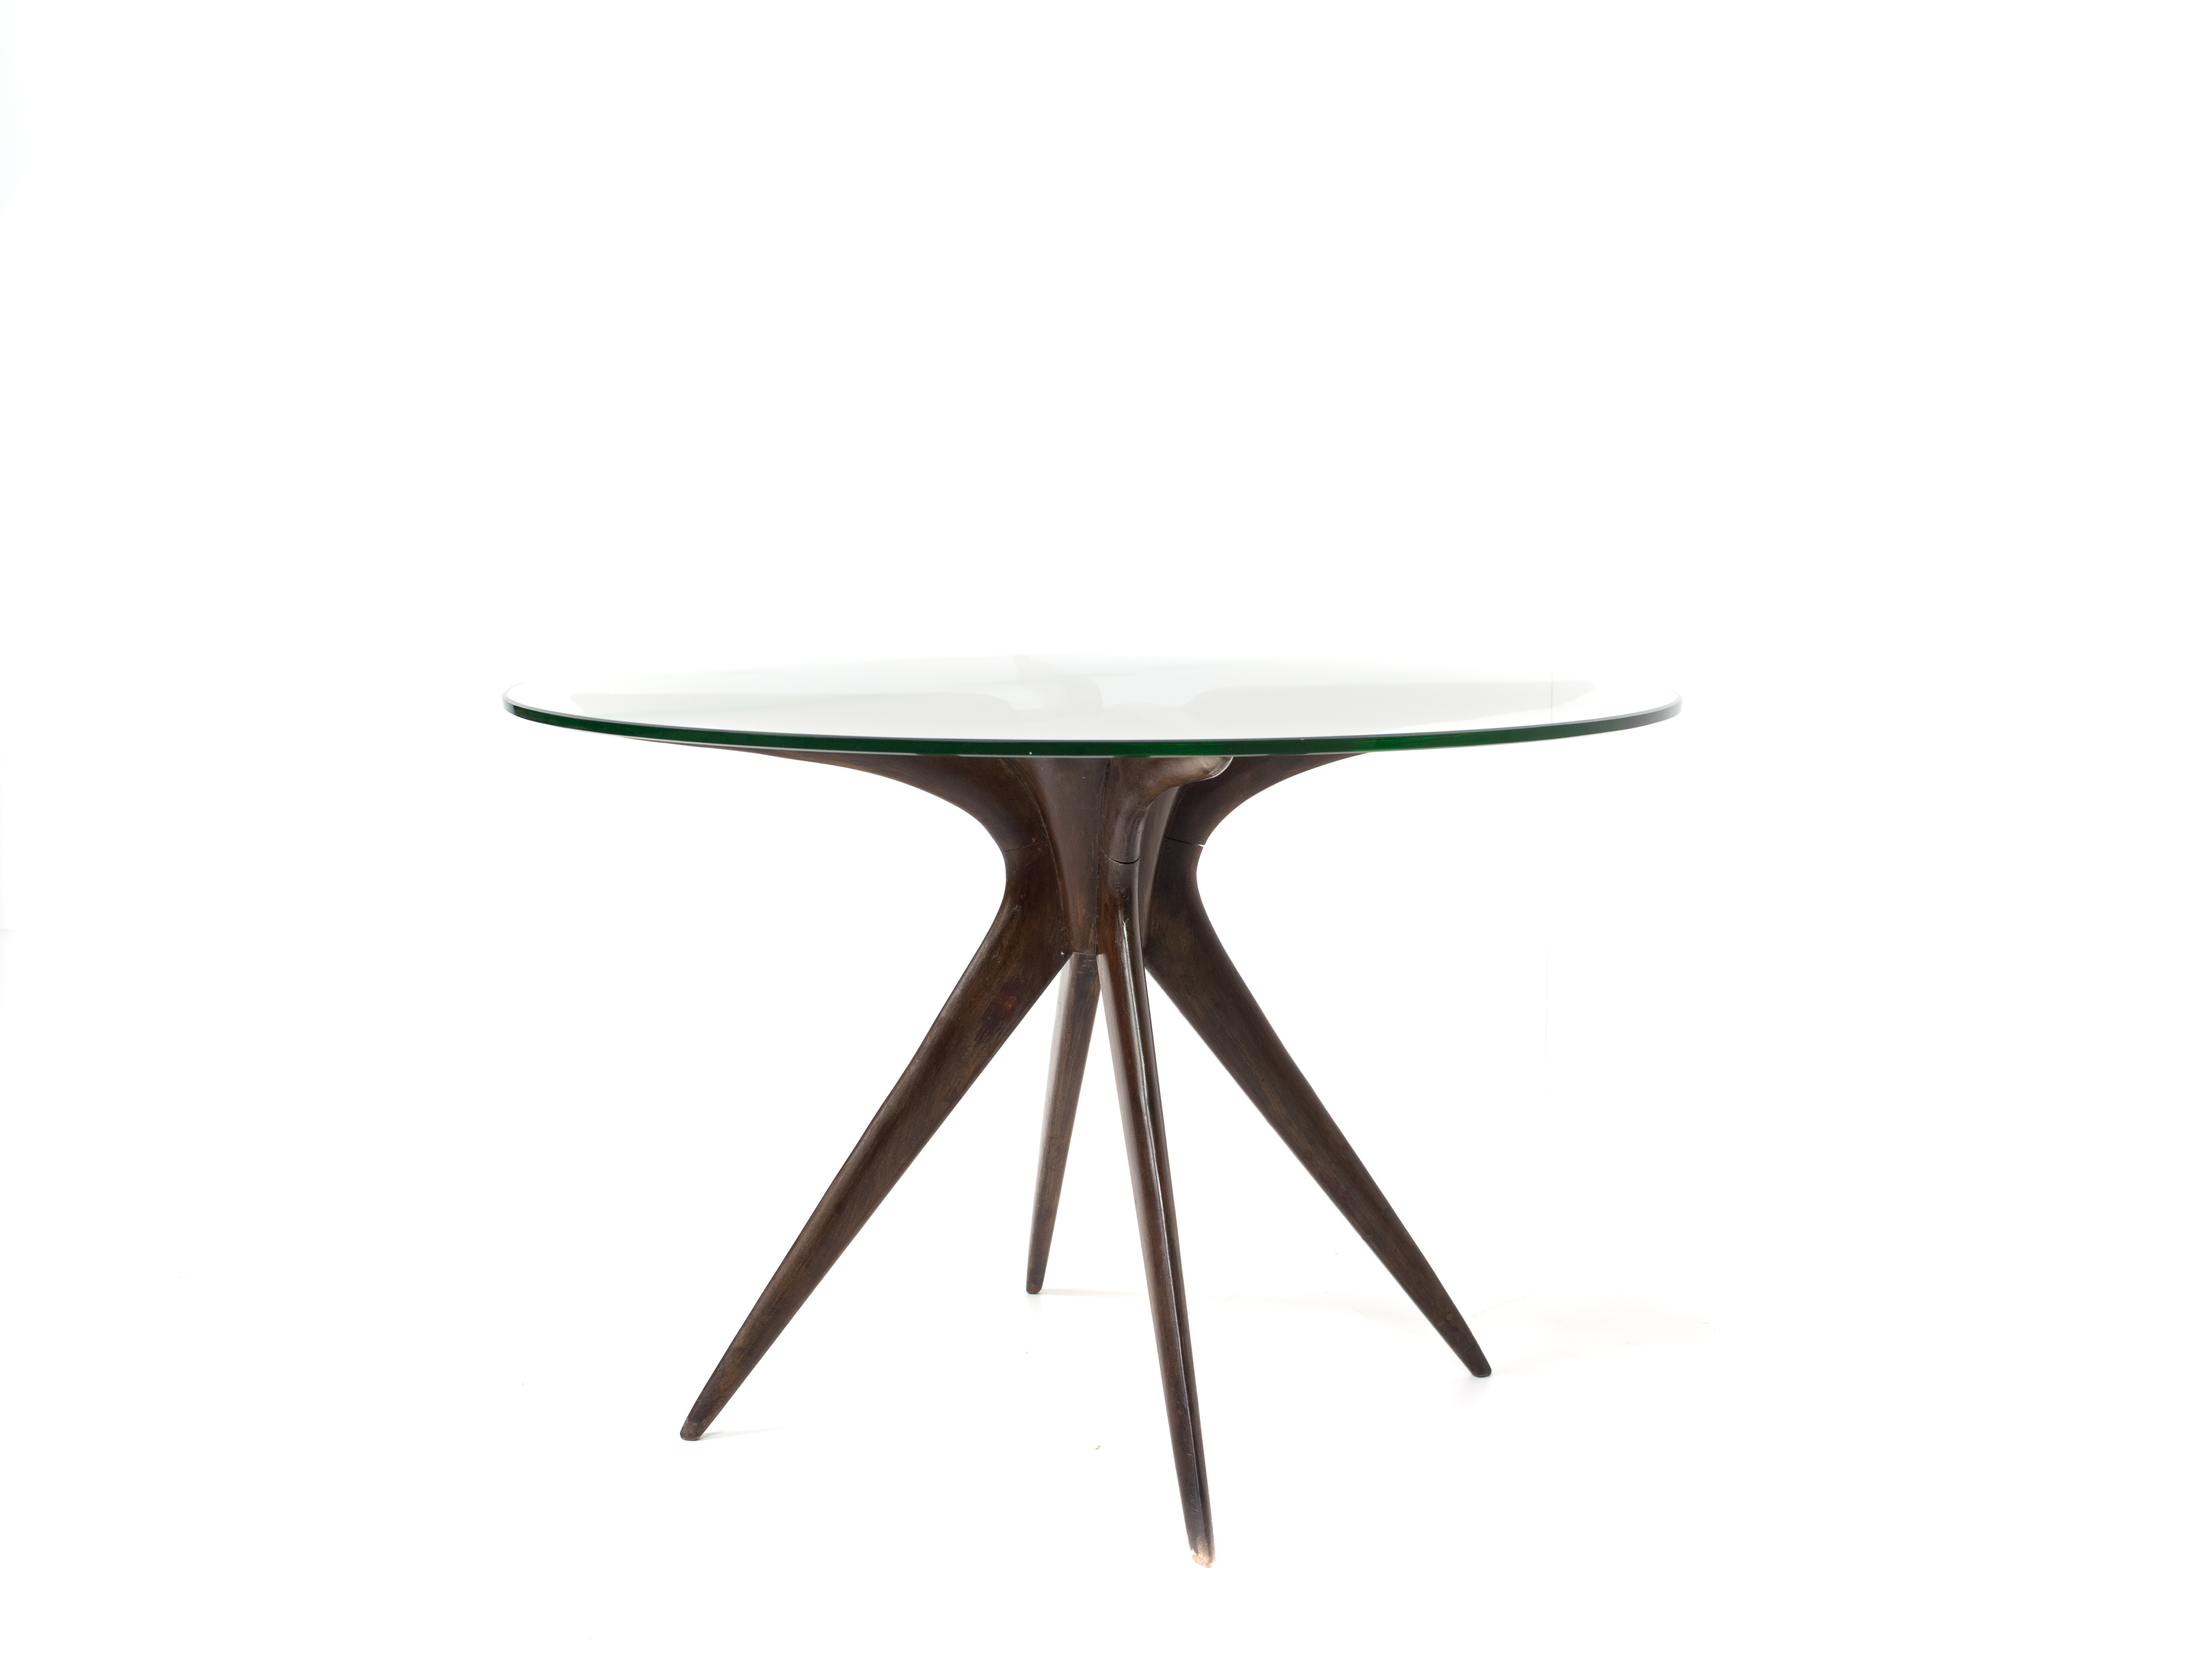 Ico Parisi Coffee Table in Wood and Glass, Italy 1950s